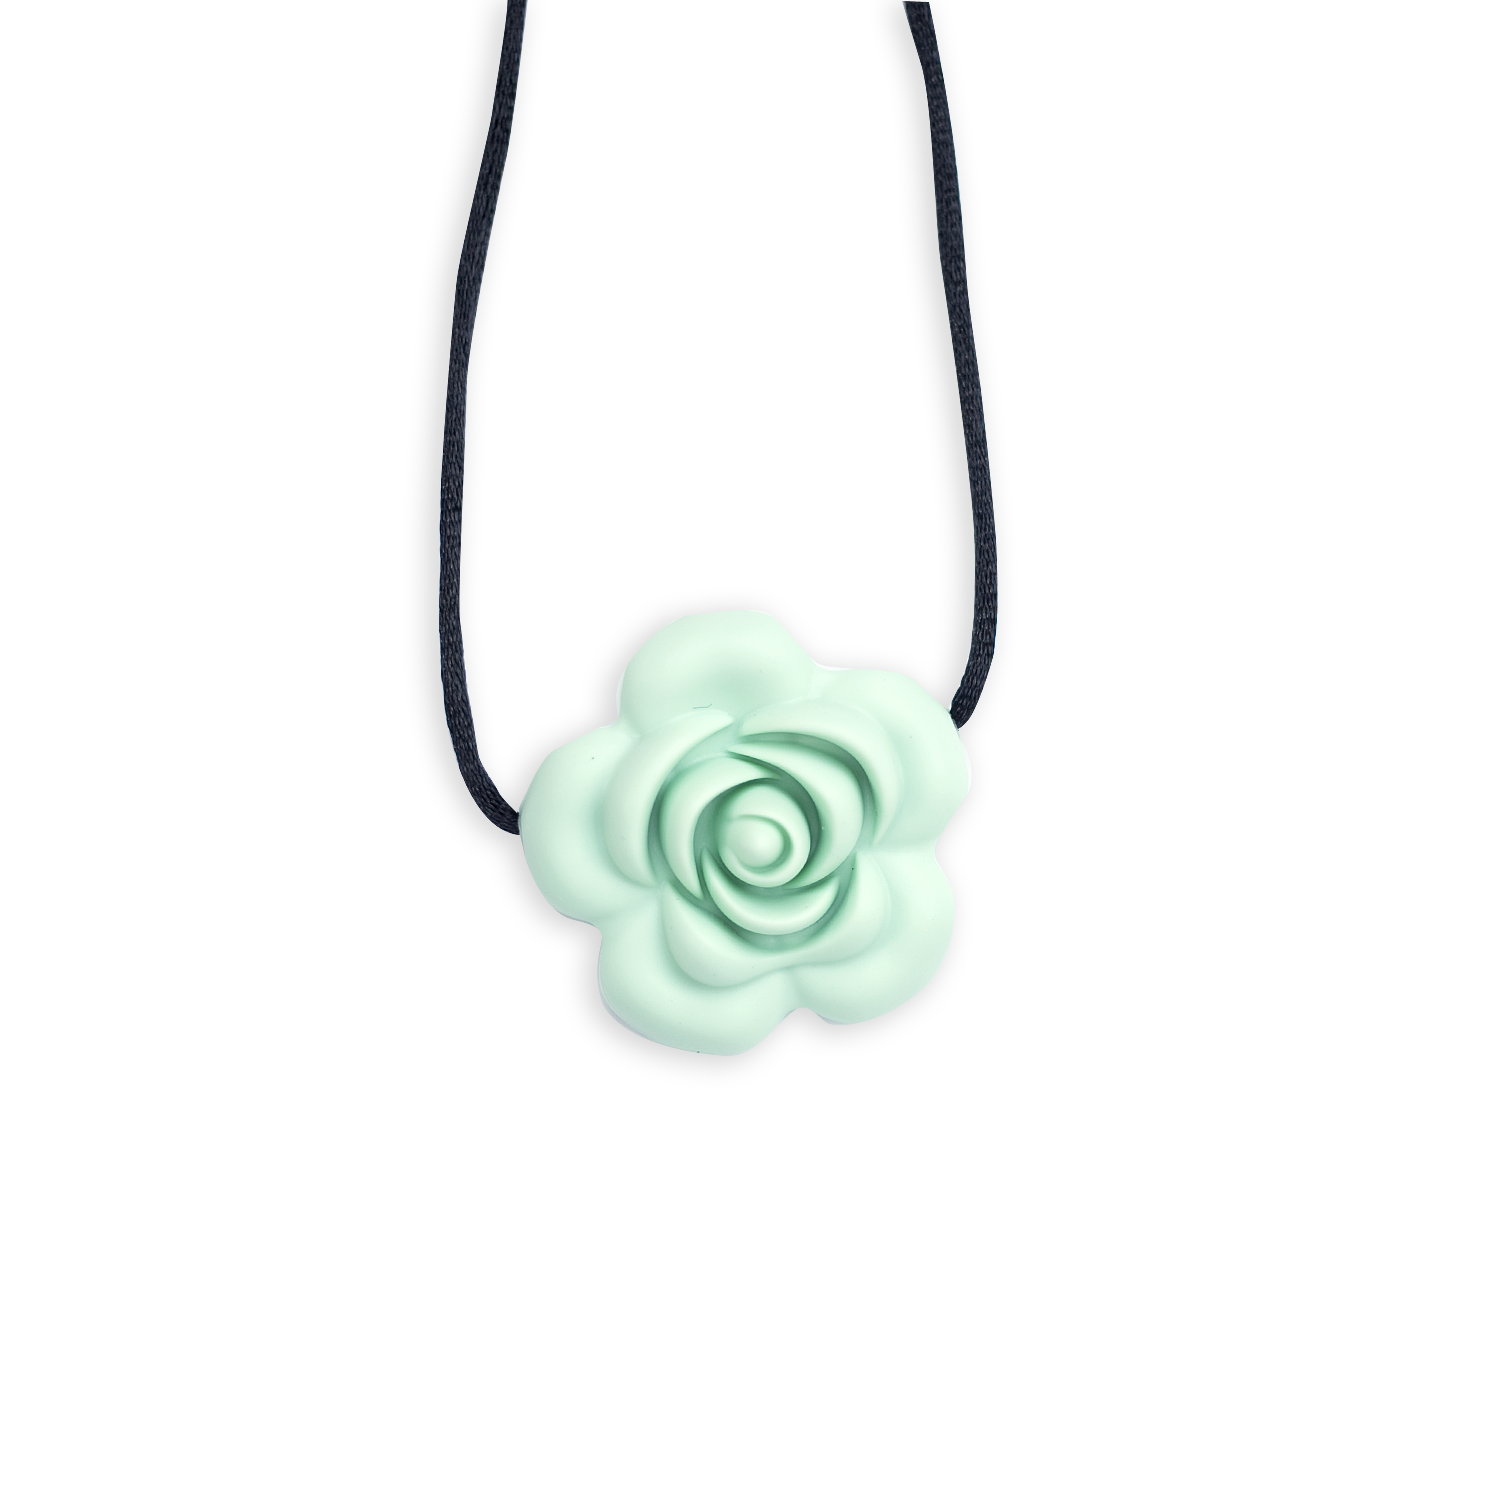 Stimtastic Chewable Blossom Pendant Necklace Stim toys and